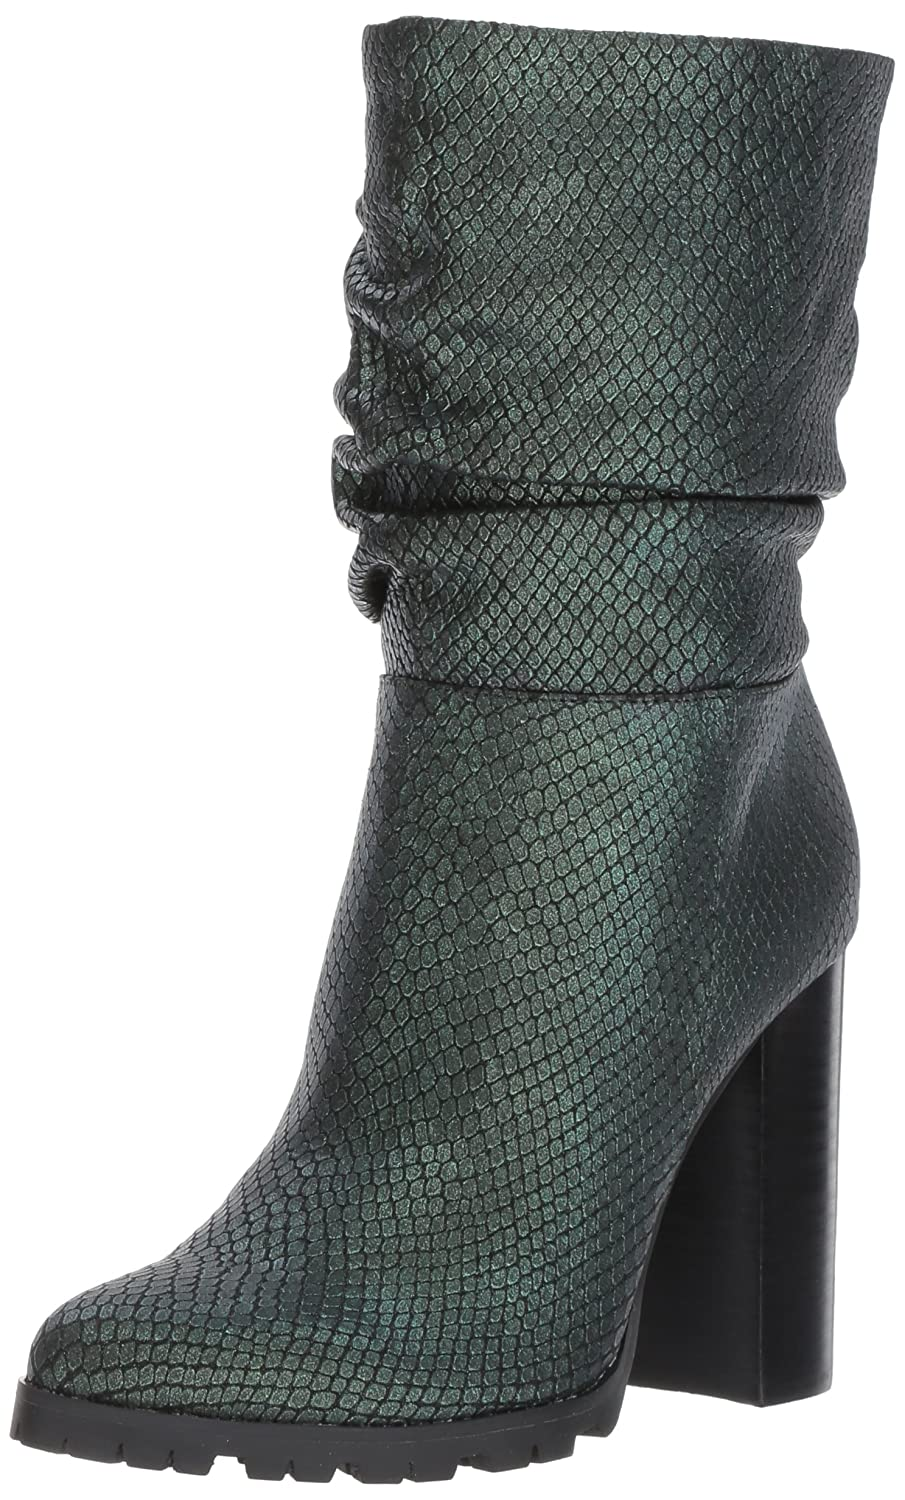 Katy Perry Women's The Raina Ankle Boot B06XDHYPXF 6 B(M) US Forest Green